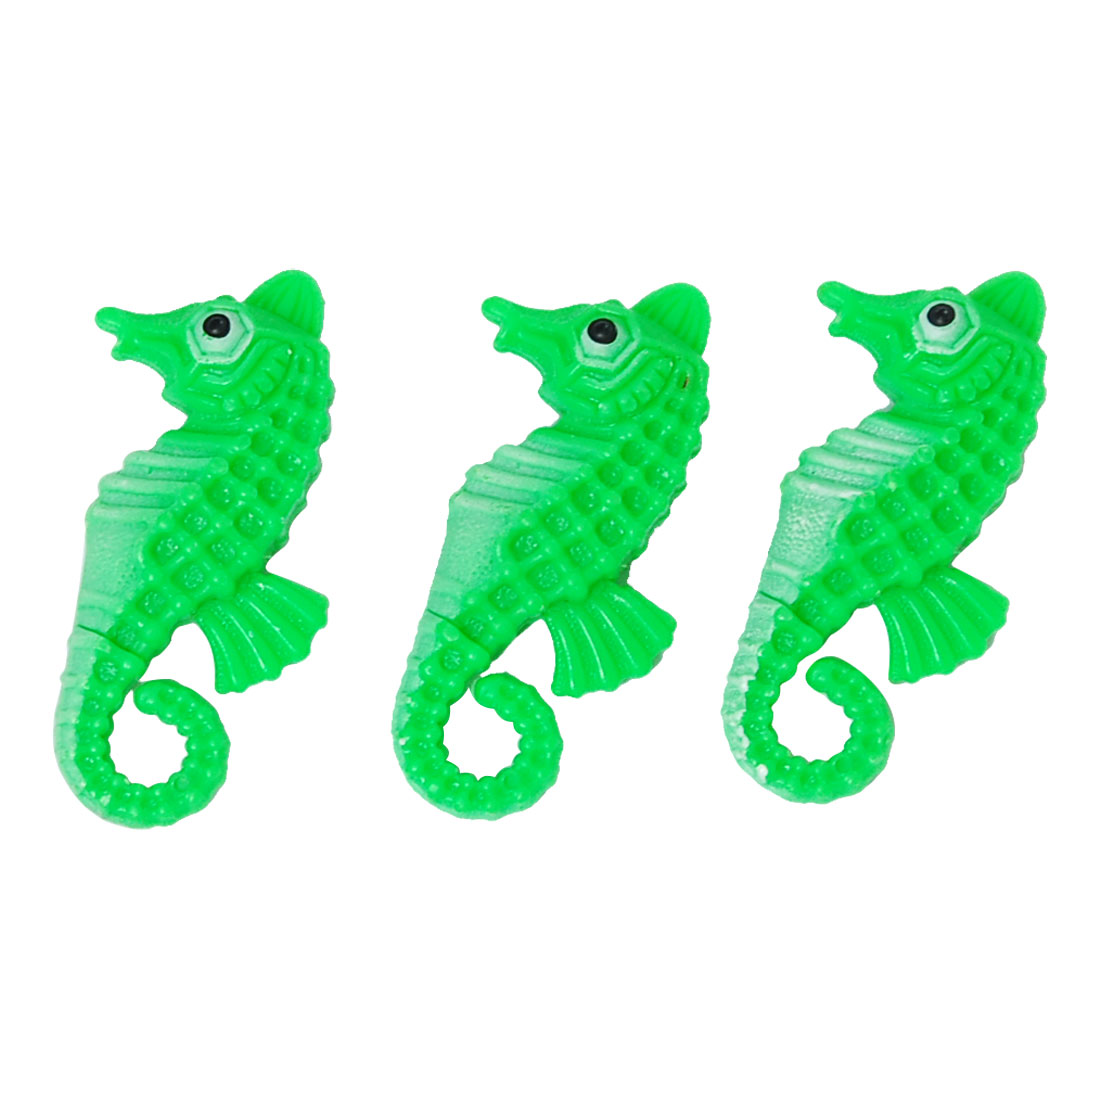 3PCS Plastic Mini Seahorse Green Ornament for Aquarium